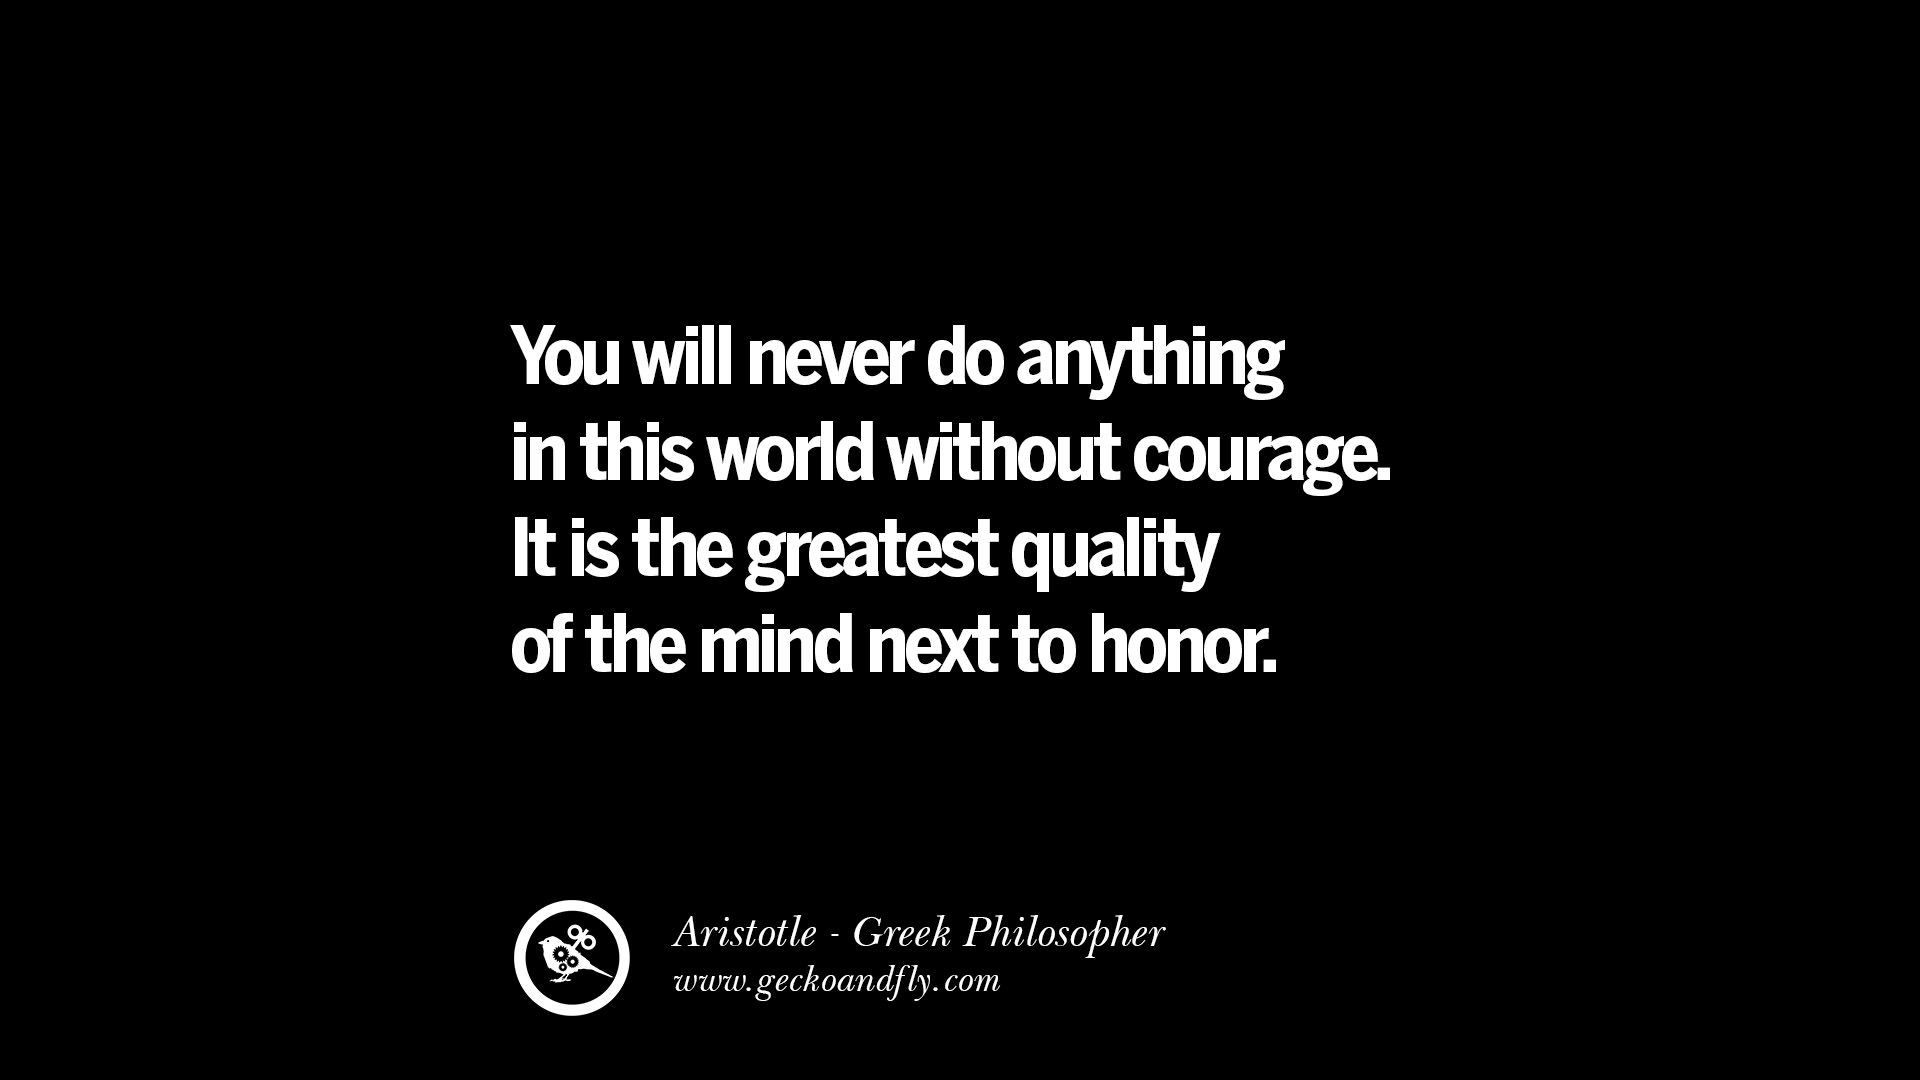 famous aristotle quotes on ethics love life politics and you will never do anything in the world out courage it is the greatest quality of the mind next to honor